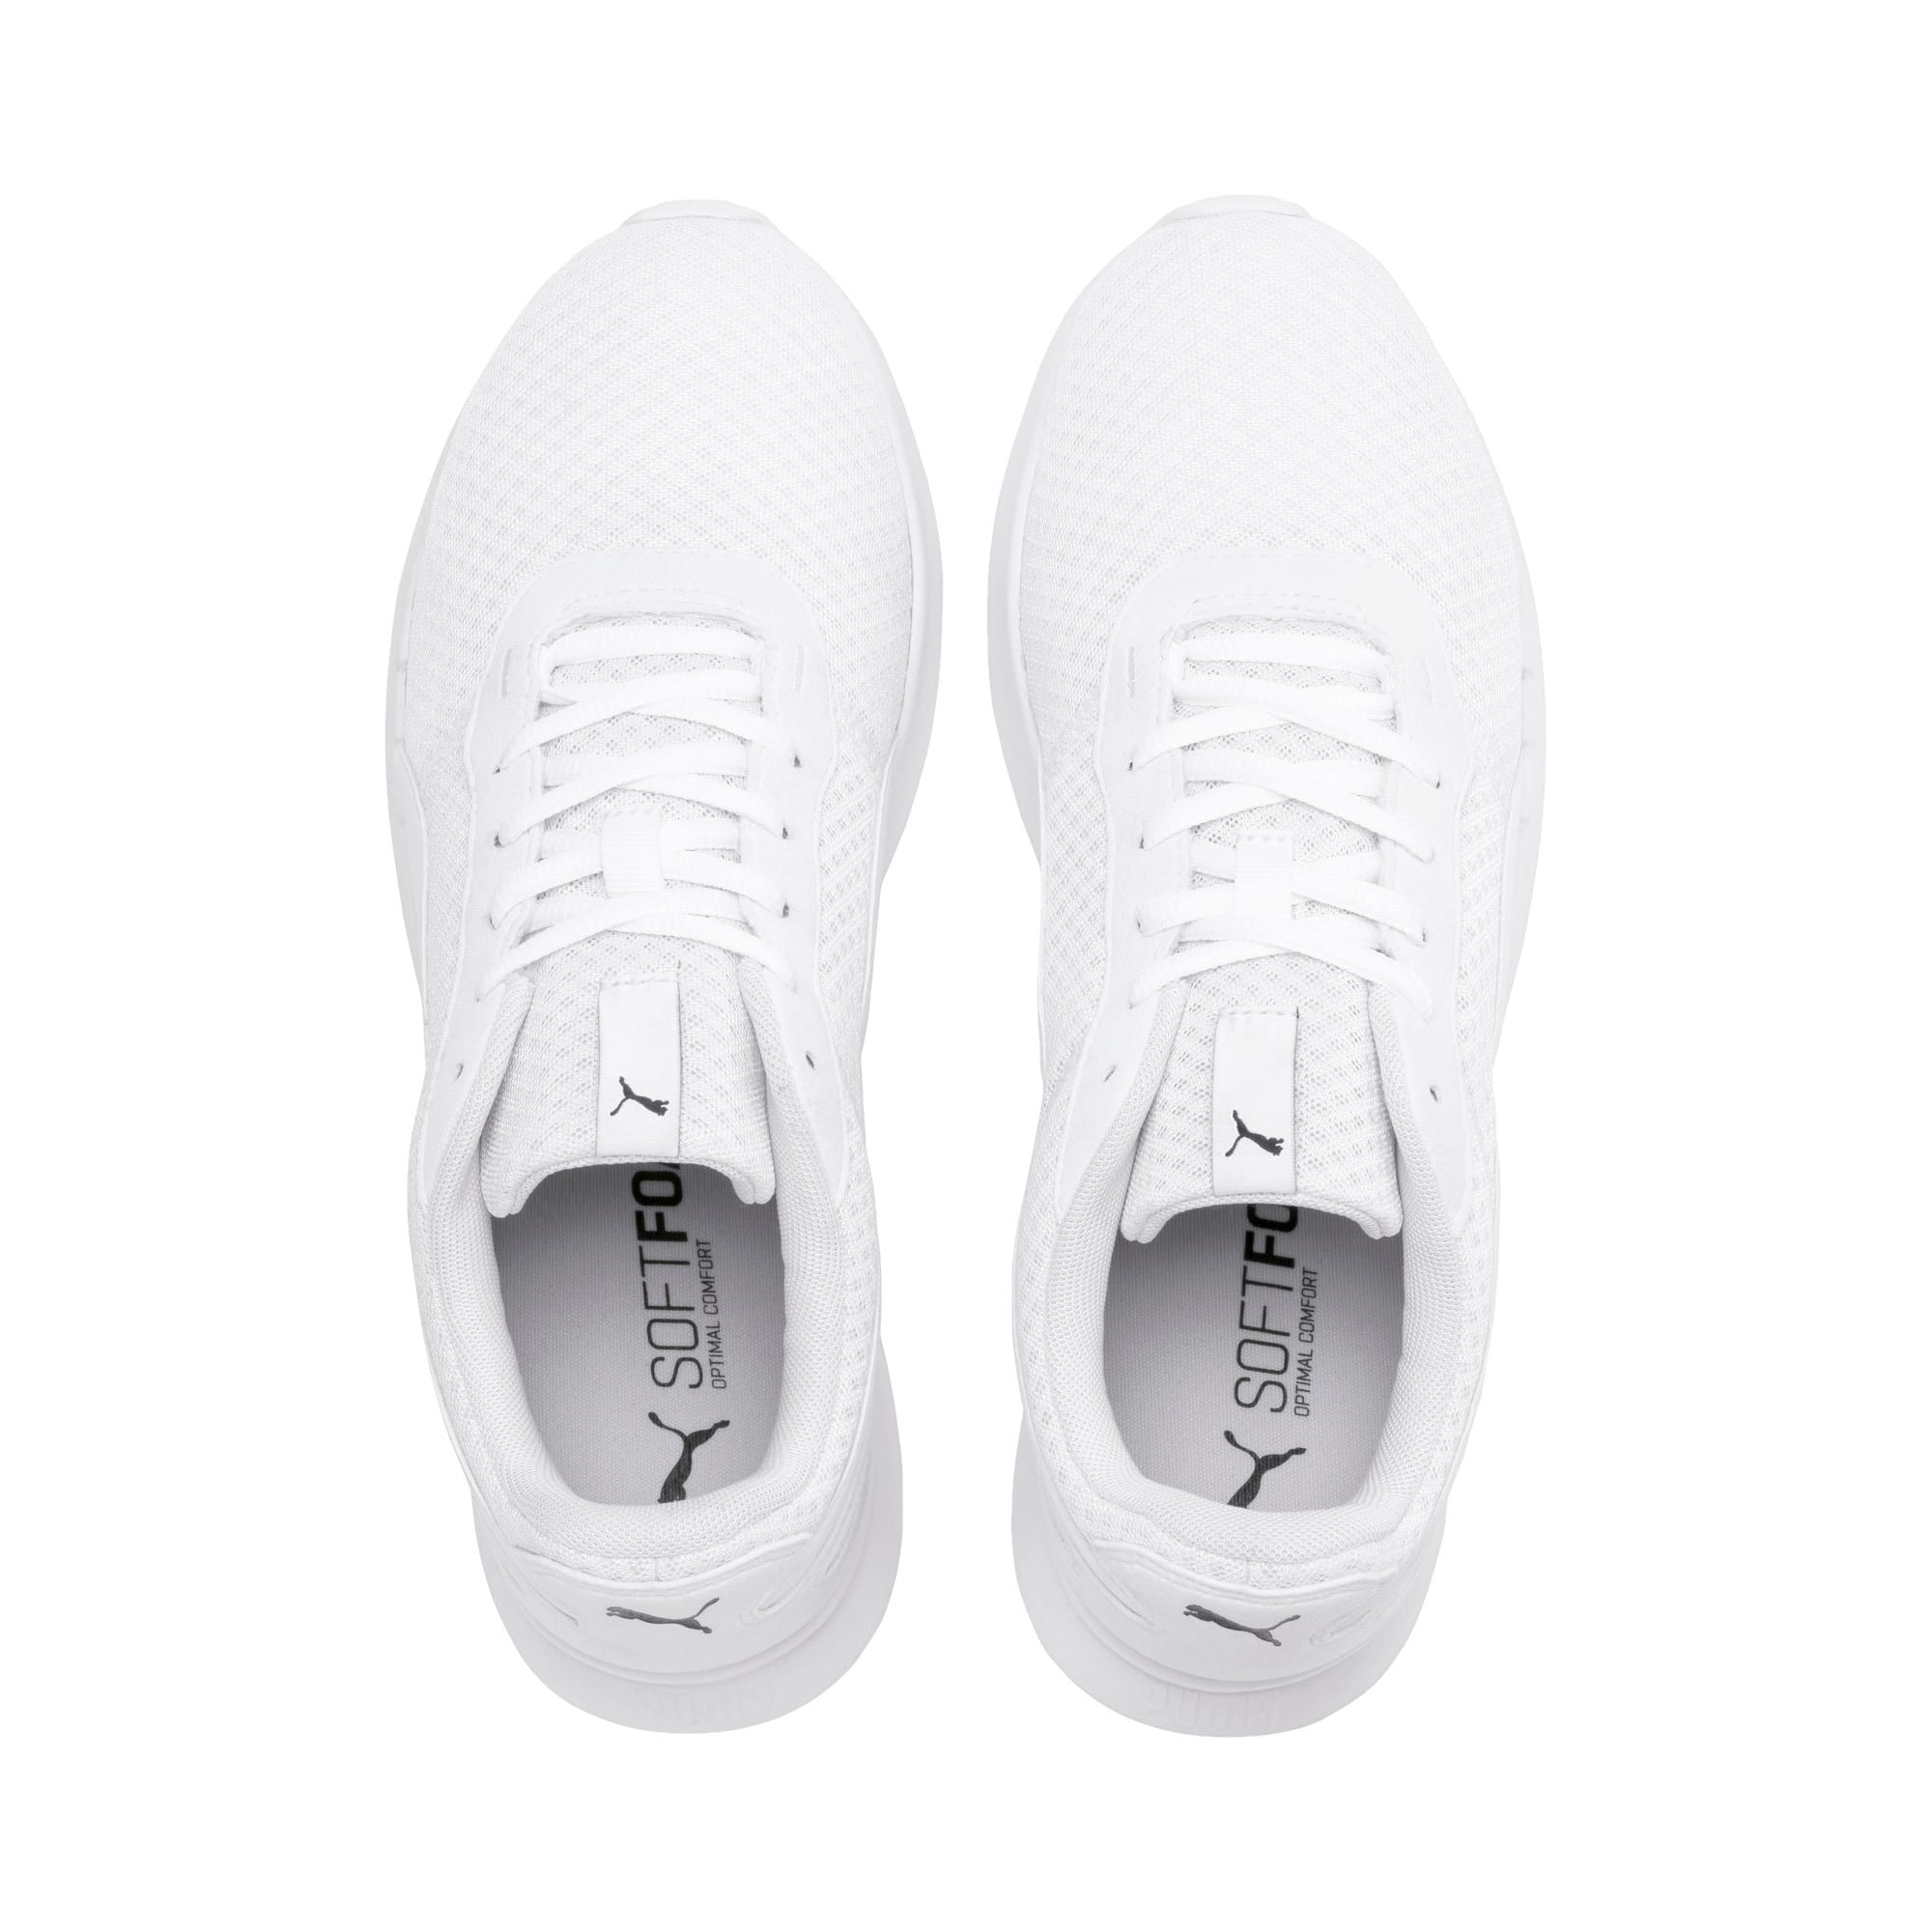 Thumbnail 6 of ST Activate Sneakers, Puma White-Puma White, medium